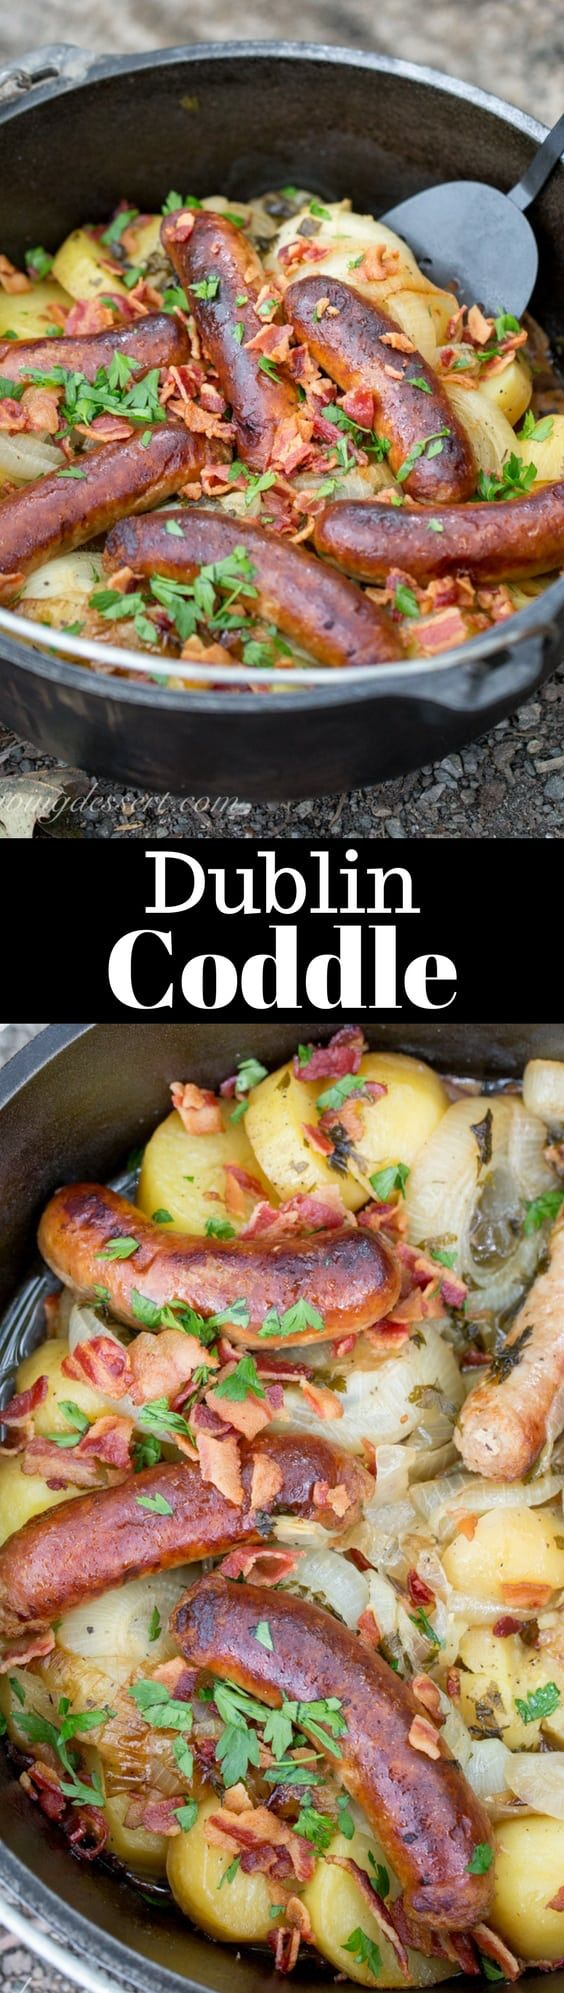 Dublin Coddle - a traditional Irish dish made with potatoes, sausage, and bacon then slow cooked in a delicious stew. Perfect Camping Food in a Lodge Camp Dutch Oven | www.savingdessert.com